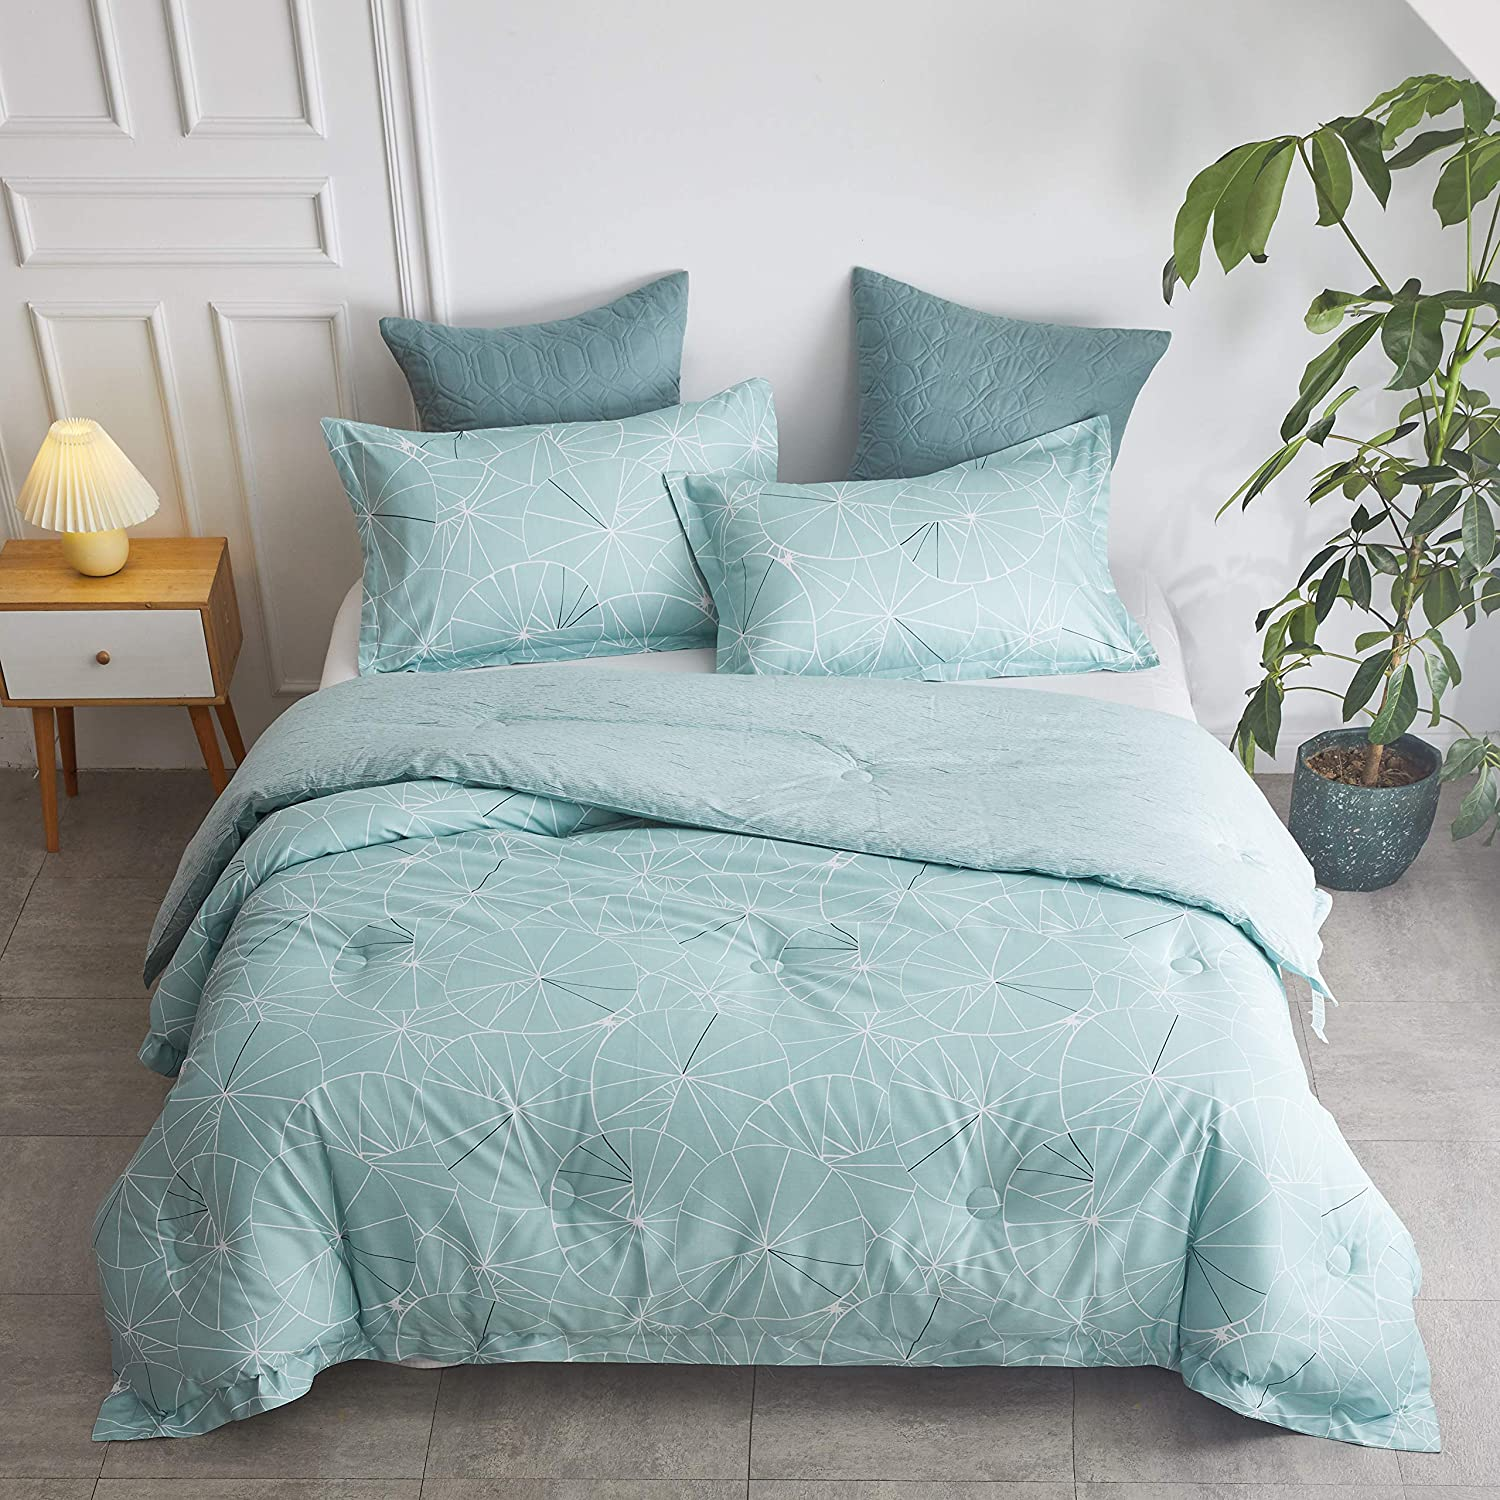 J-HOME COLLECTION 100% Cotton Percale Reversible Pattern Comforter Set with 2 Pillow Shams - Down Alternative Comforter - 3 Piece Comforter Set - All Season Comforter Set (Jade, Full/Queen)